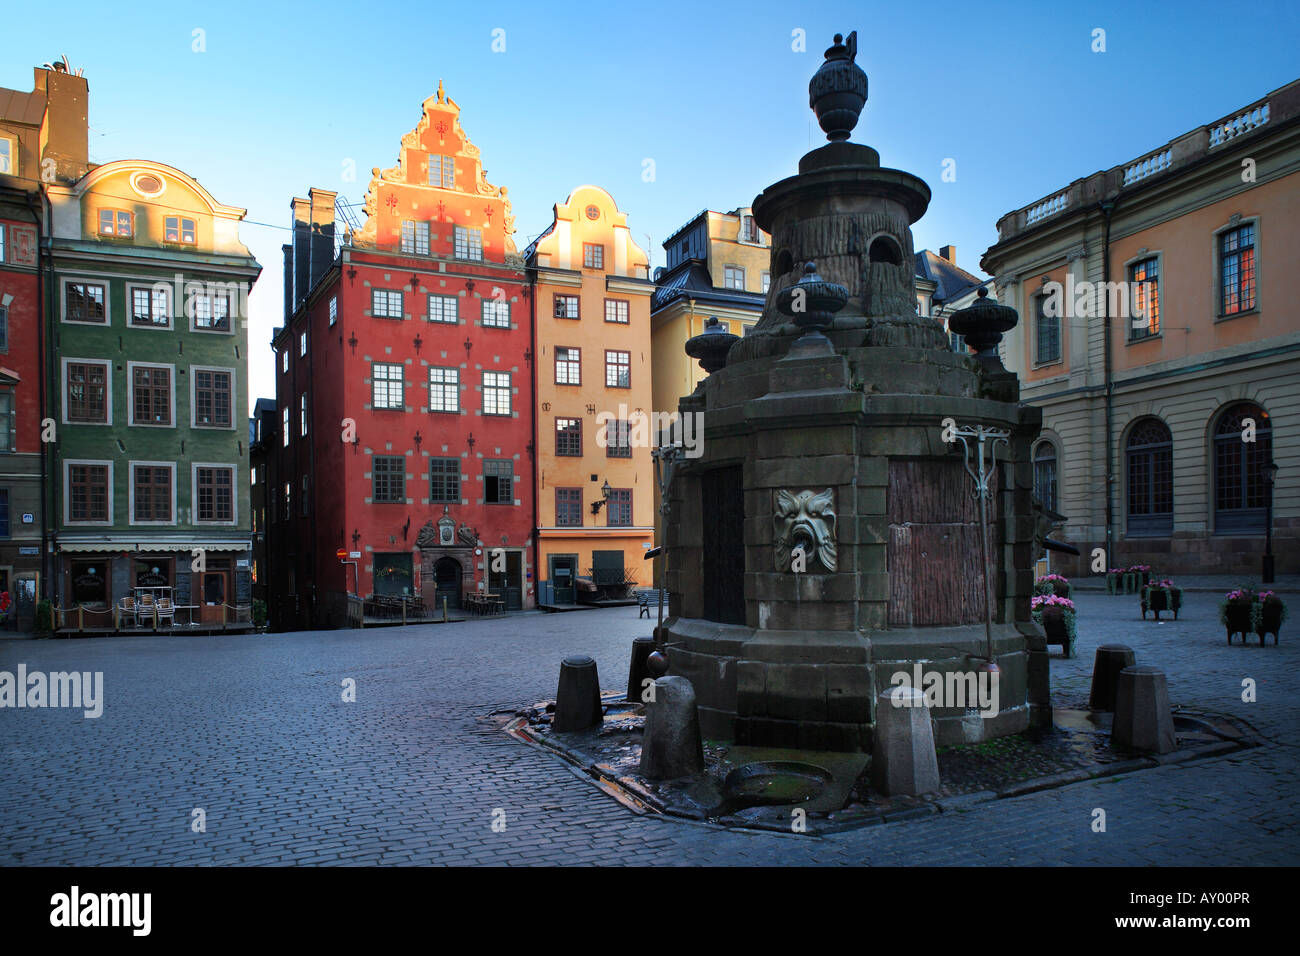 House fronts at Stortorget square in Stockholm s Old Town ('Gamla Stan'), Sweden - Stock Image